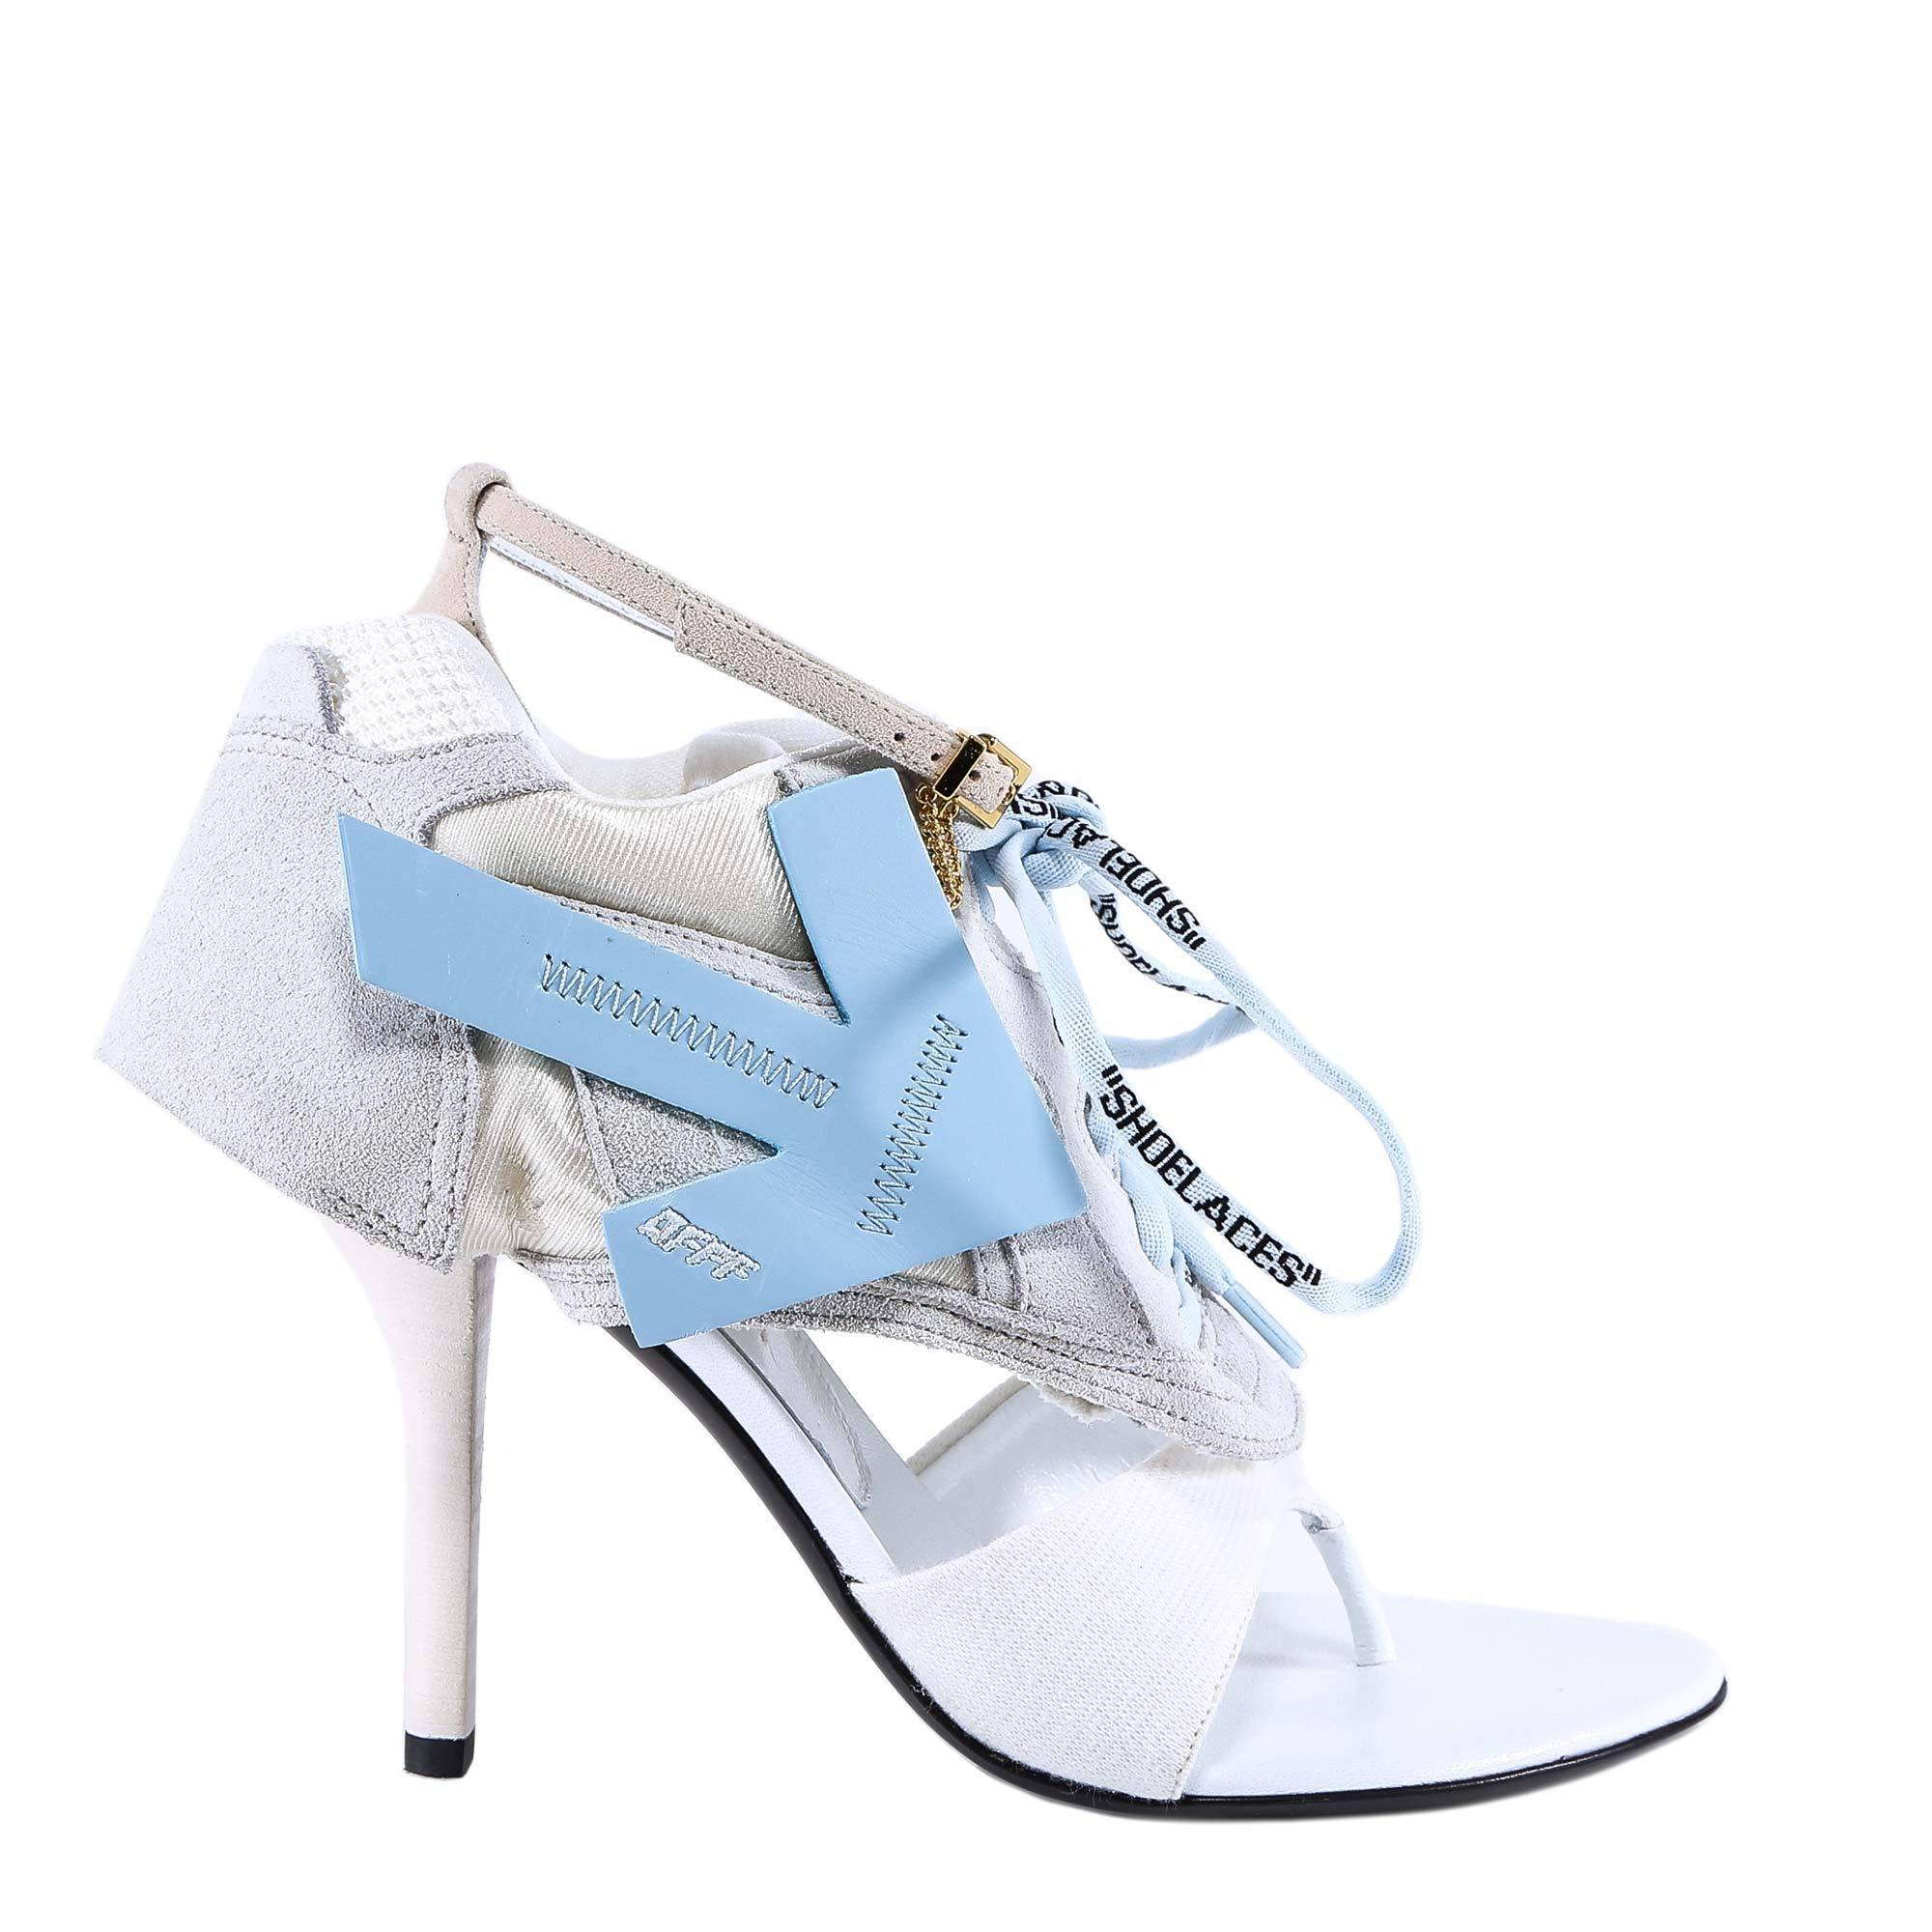 85767b0ac Off-White c/o Virgil Abloh Lace-up Runner Sandals in White - Lyst